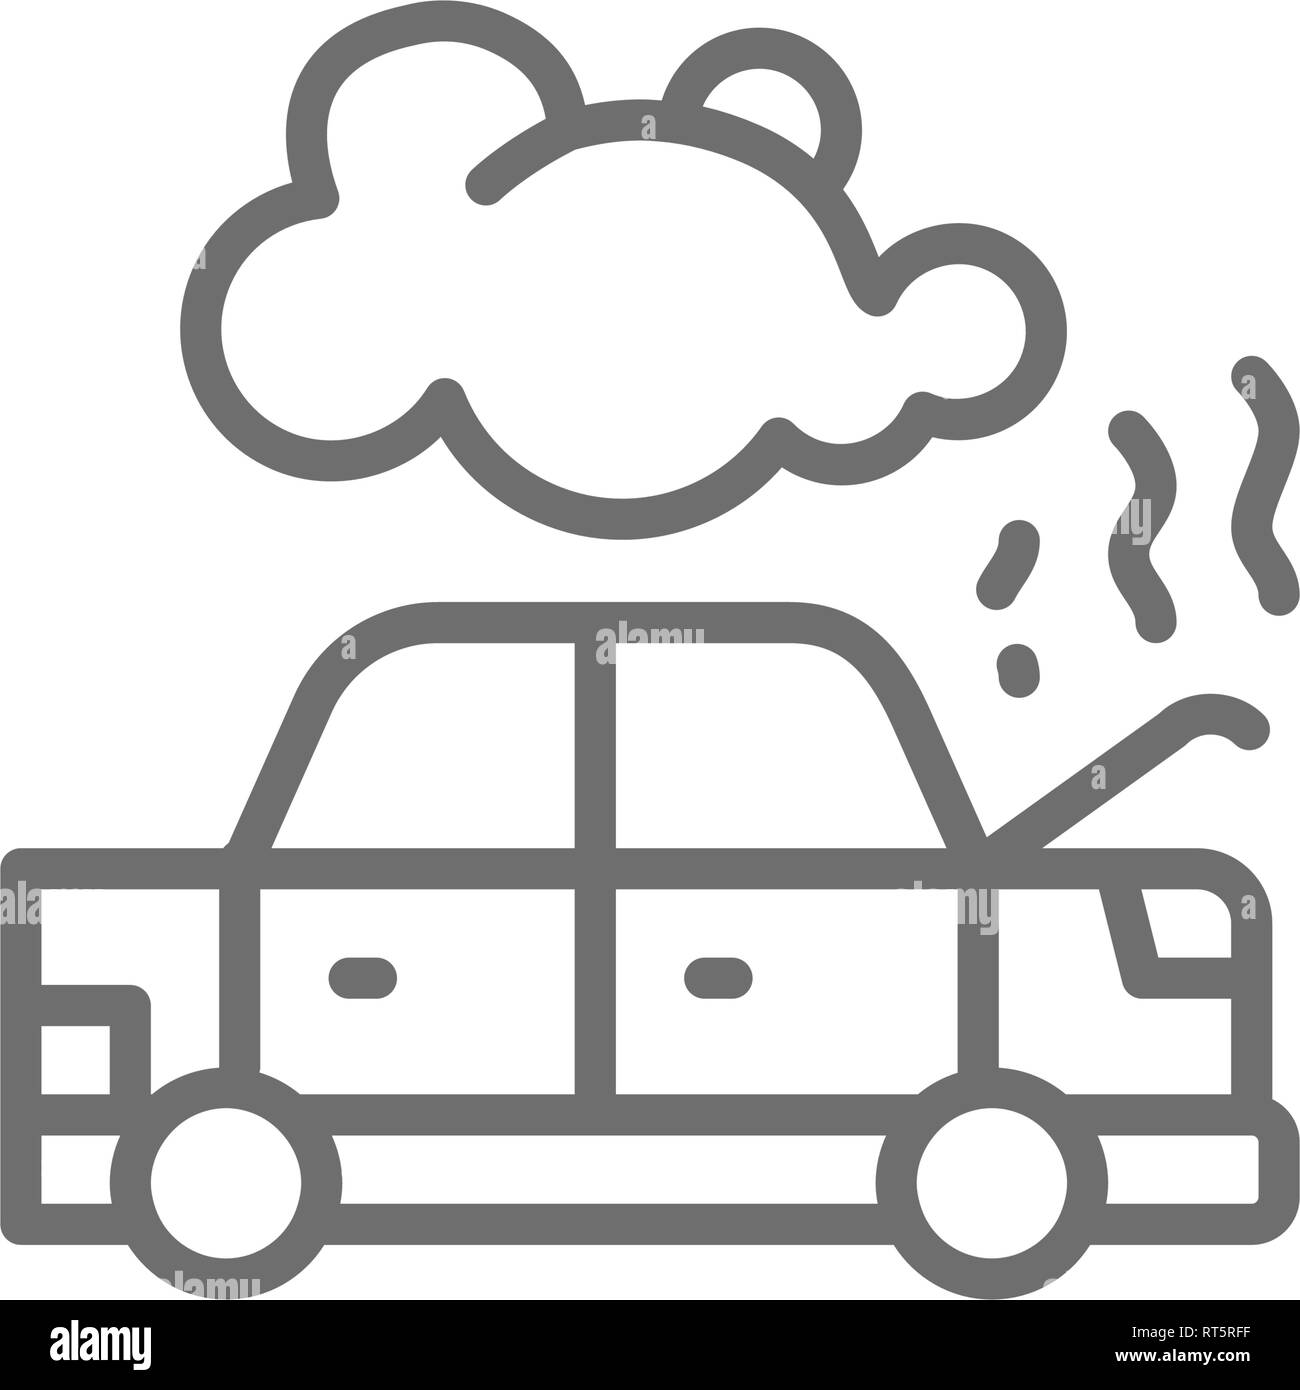 Car broke down, automobile smoking under hood, accident line icon. - Stock Image